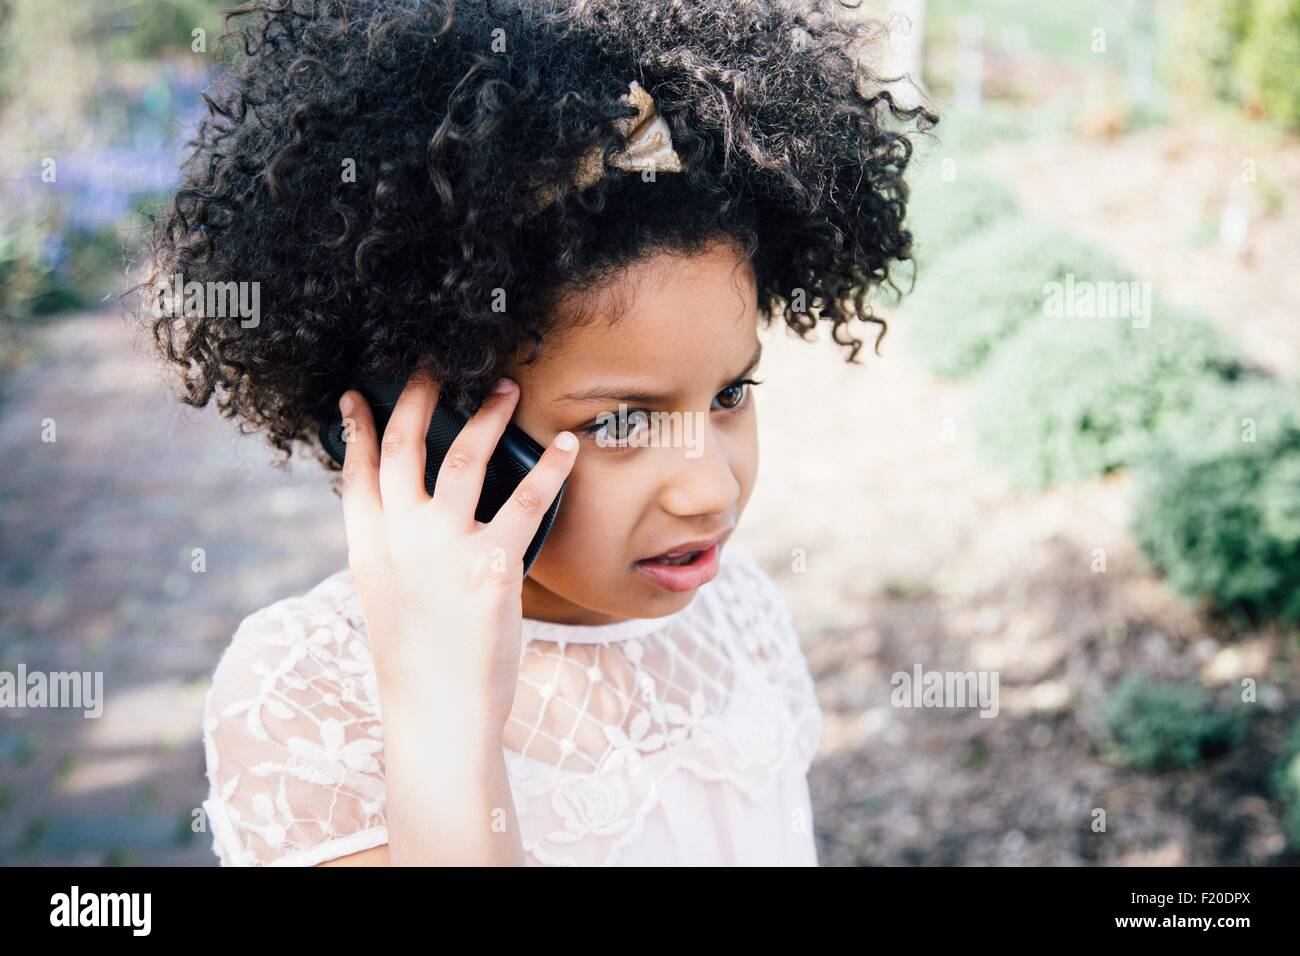 Head and shoulders of girl using smartphone to make a telephone call - Stock Image